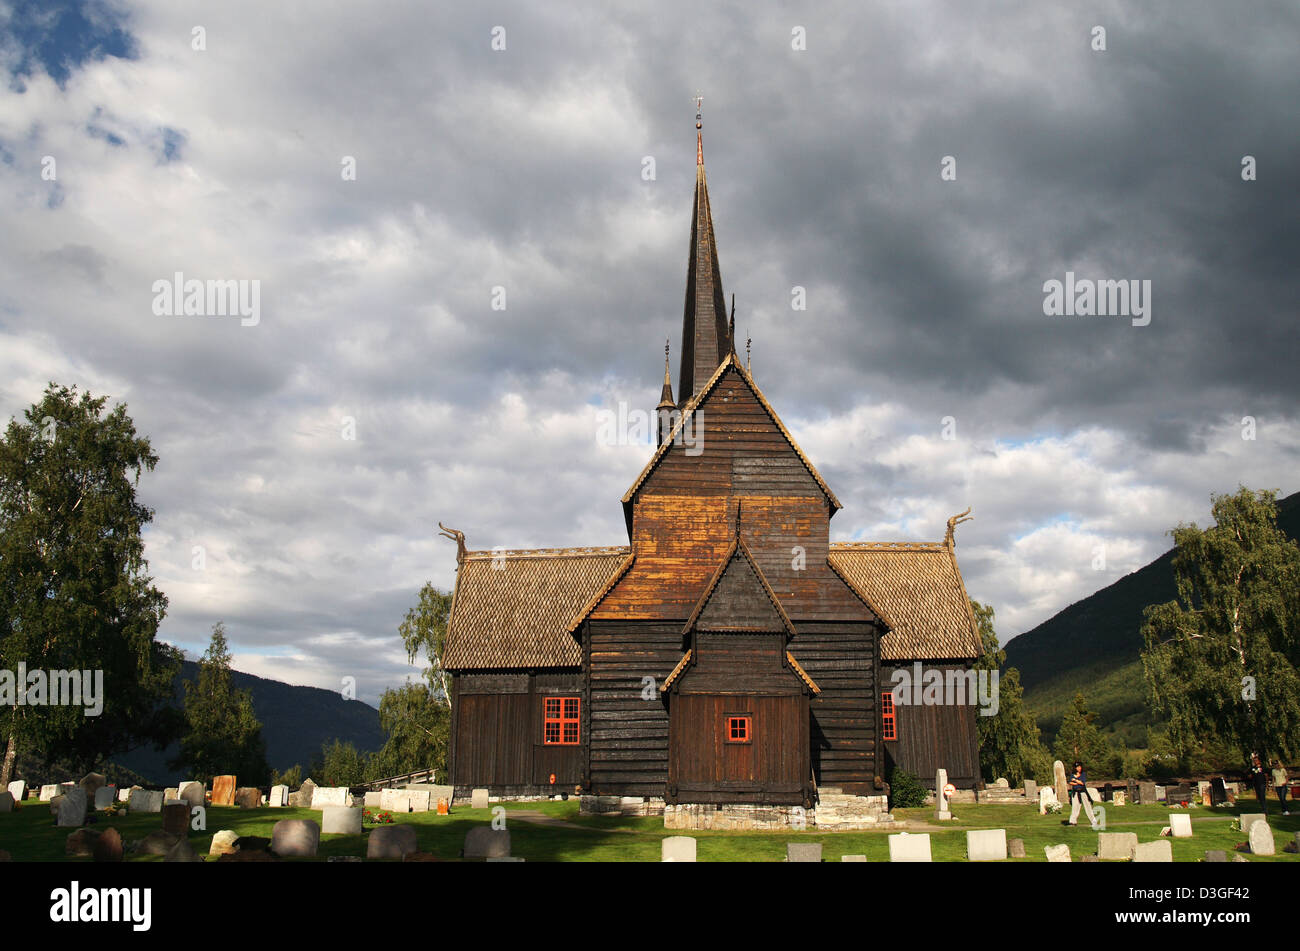 An old stave church in the Norwegian countryside - Stock Image